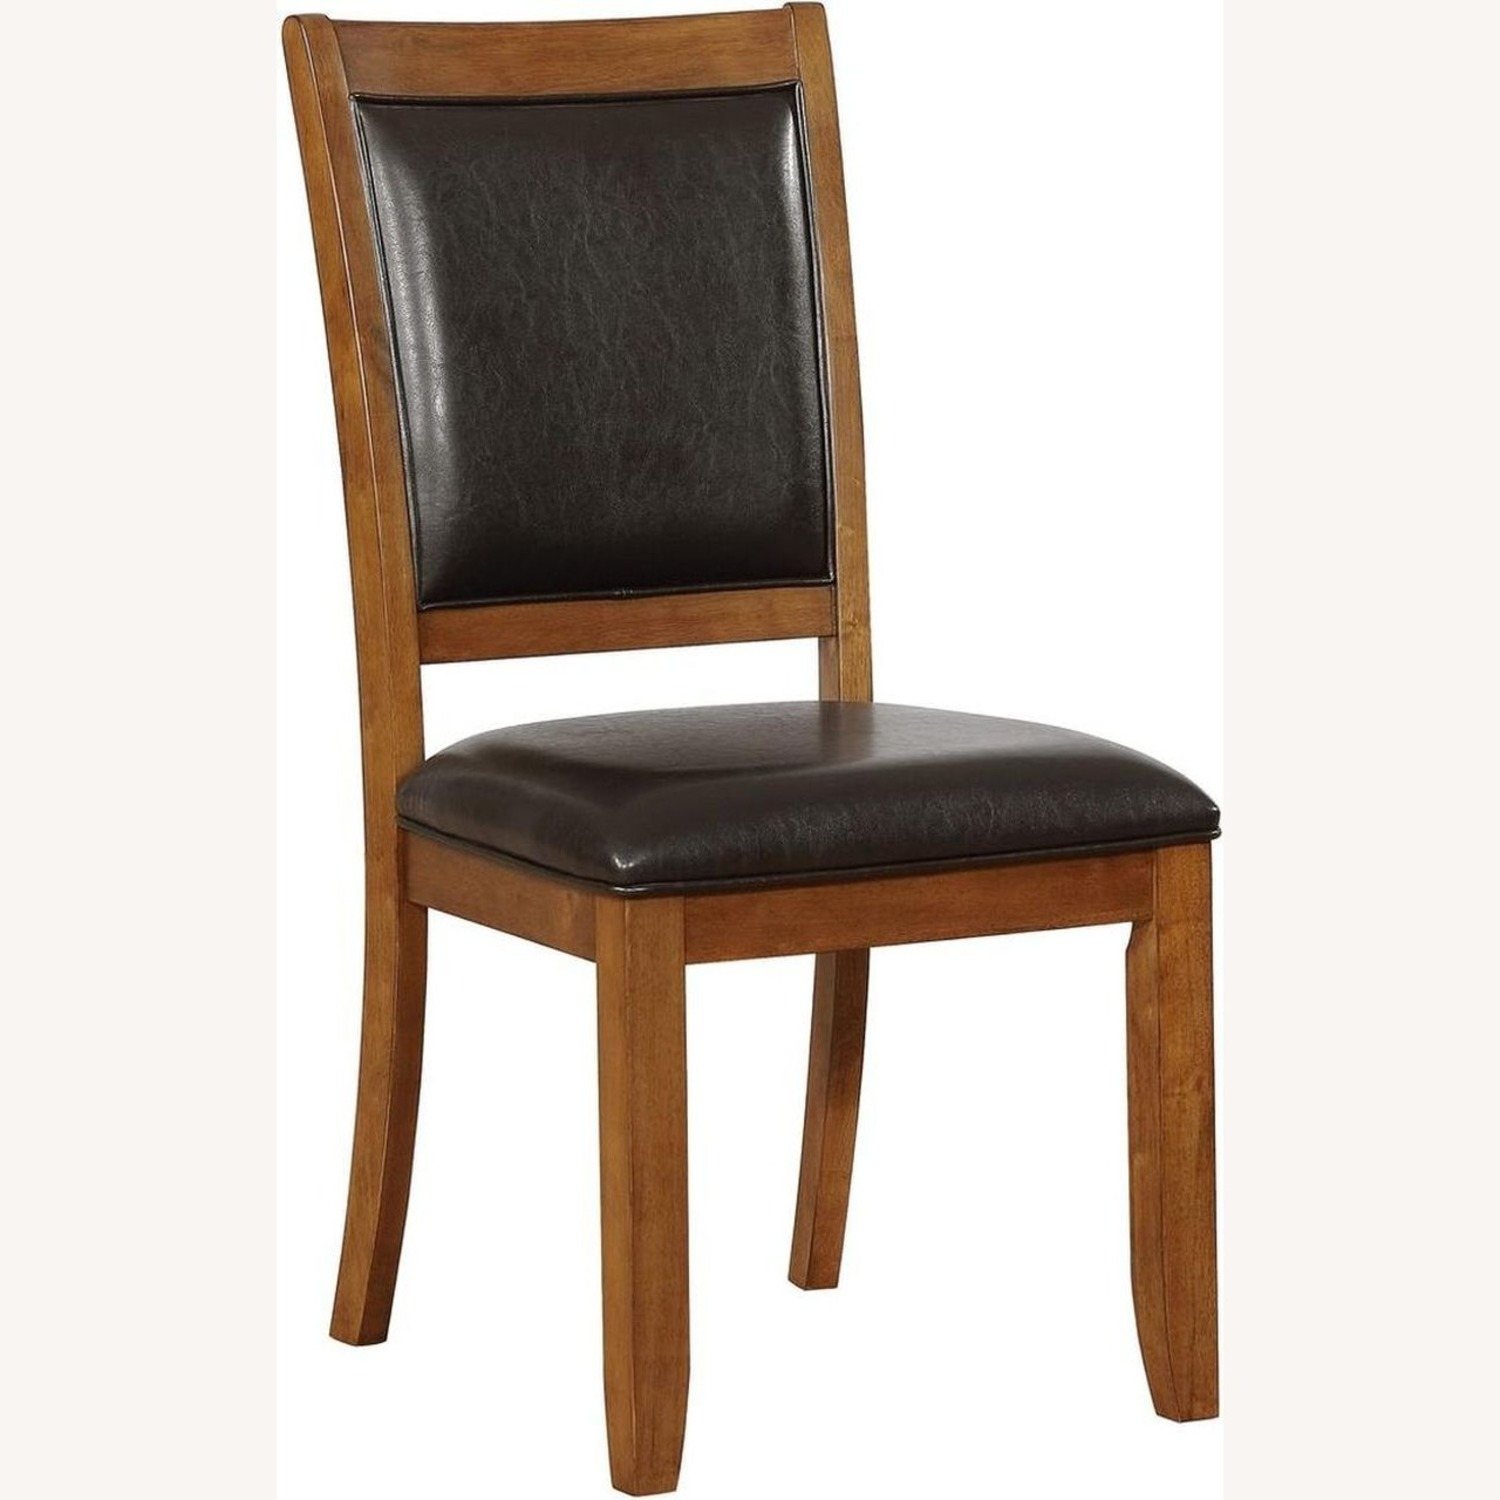 Transitional Side Chair In Black Faux Leather - image-0